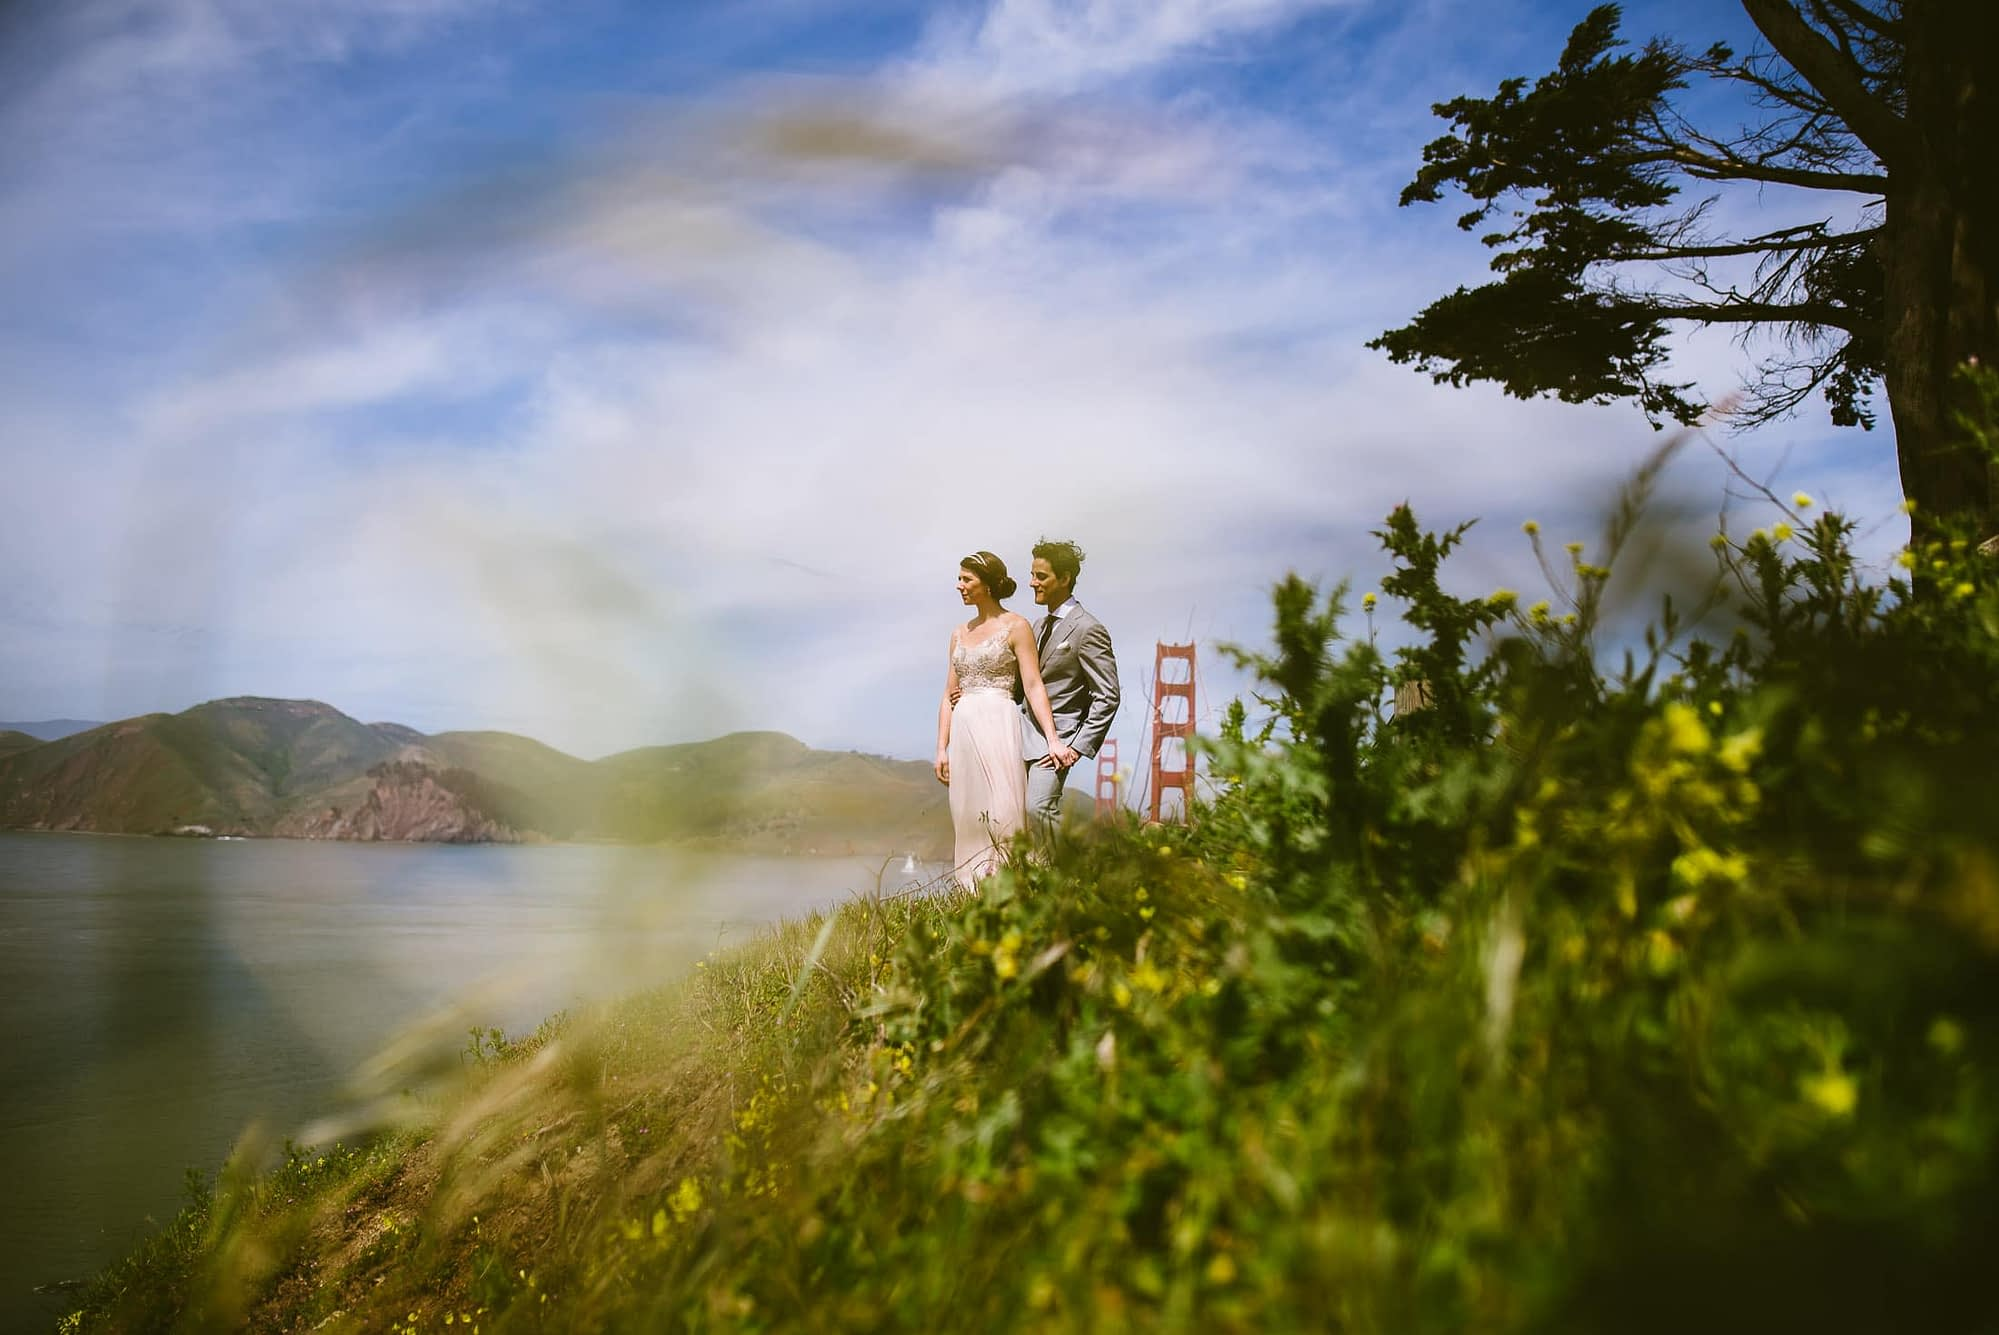 Golden Gate Bridge Wedding Pictures